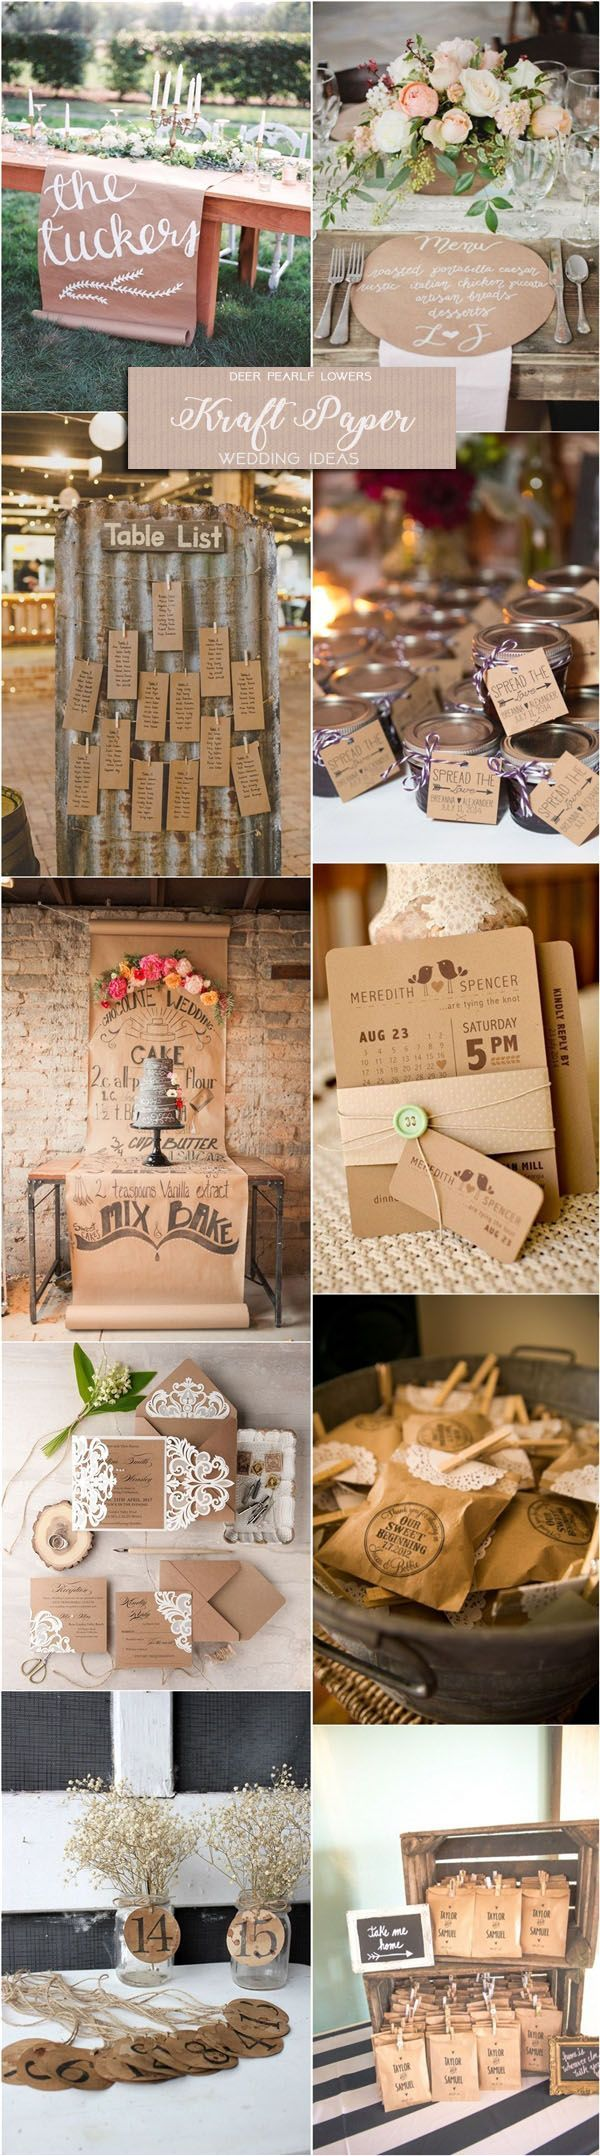 Rustic country wedding ideas - kraft paper wedding invitations & decor ideas / http://www.deerpearlflowers.com/rustic-wedding-themes-ideas/2/